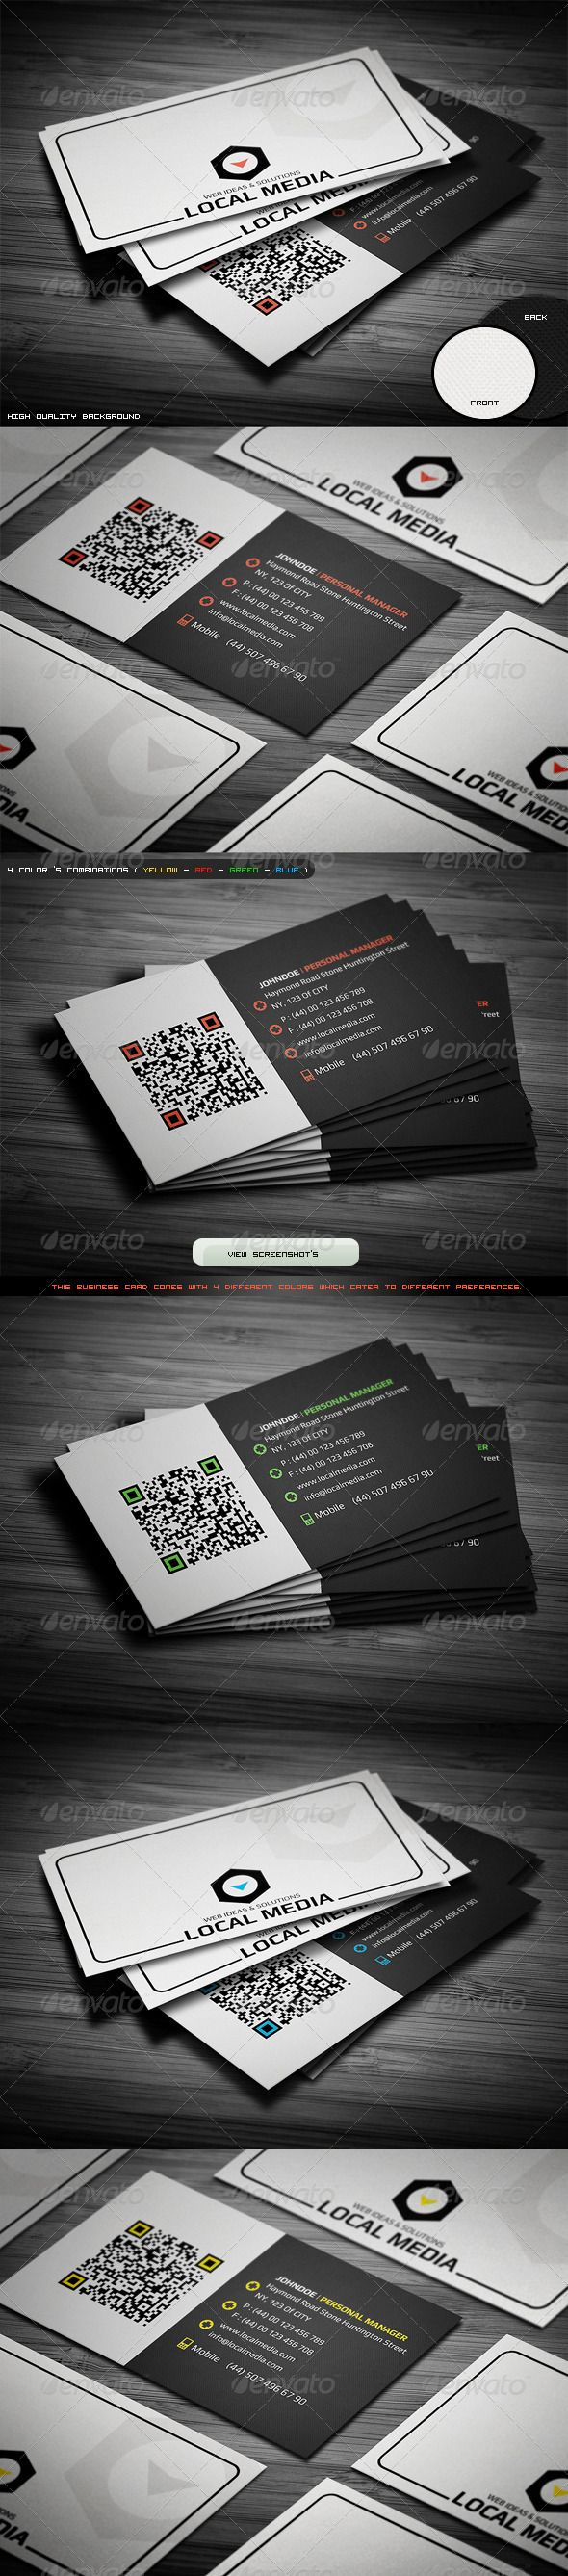 209 best VC images on Pinterest | Business cards, Colors and Design